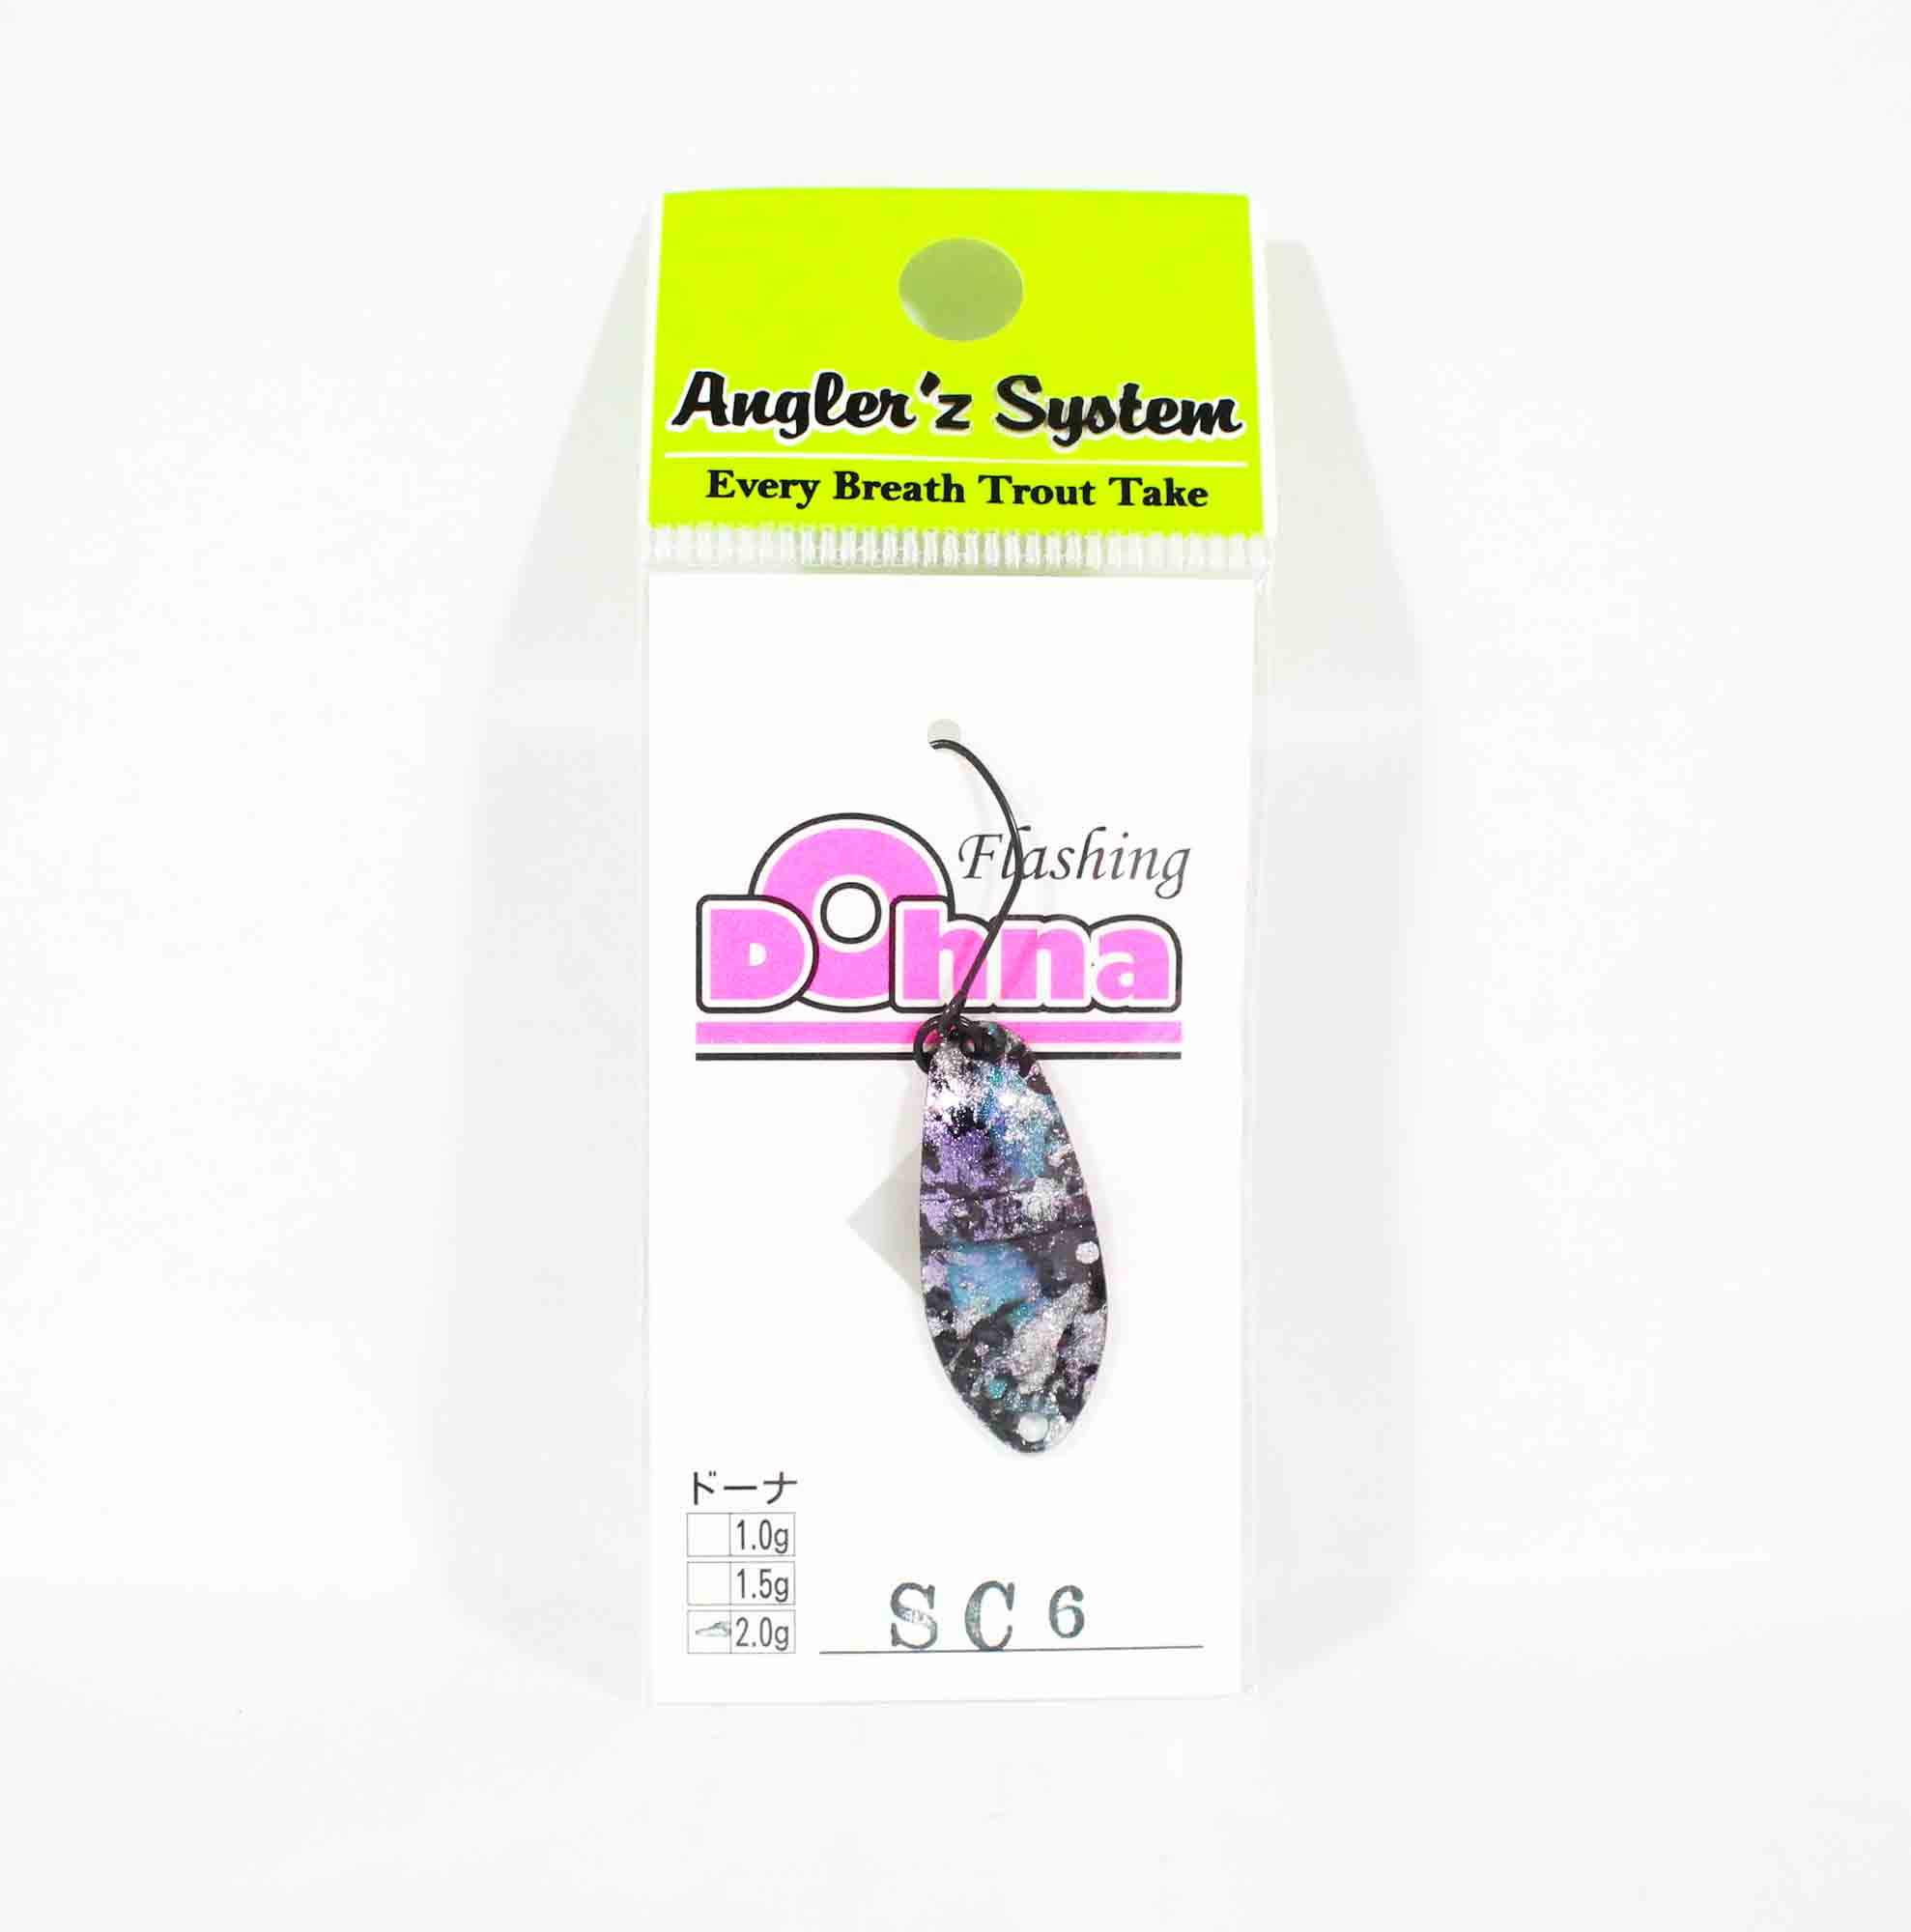 Anglers System Antem Dohna 2.0 grams Spoon Sinking Lure SC6 (3849)